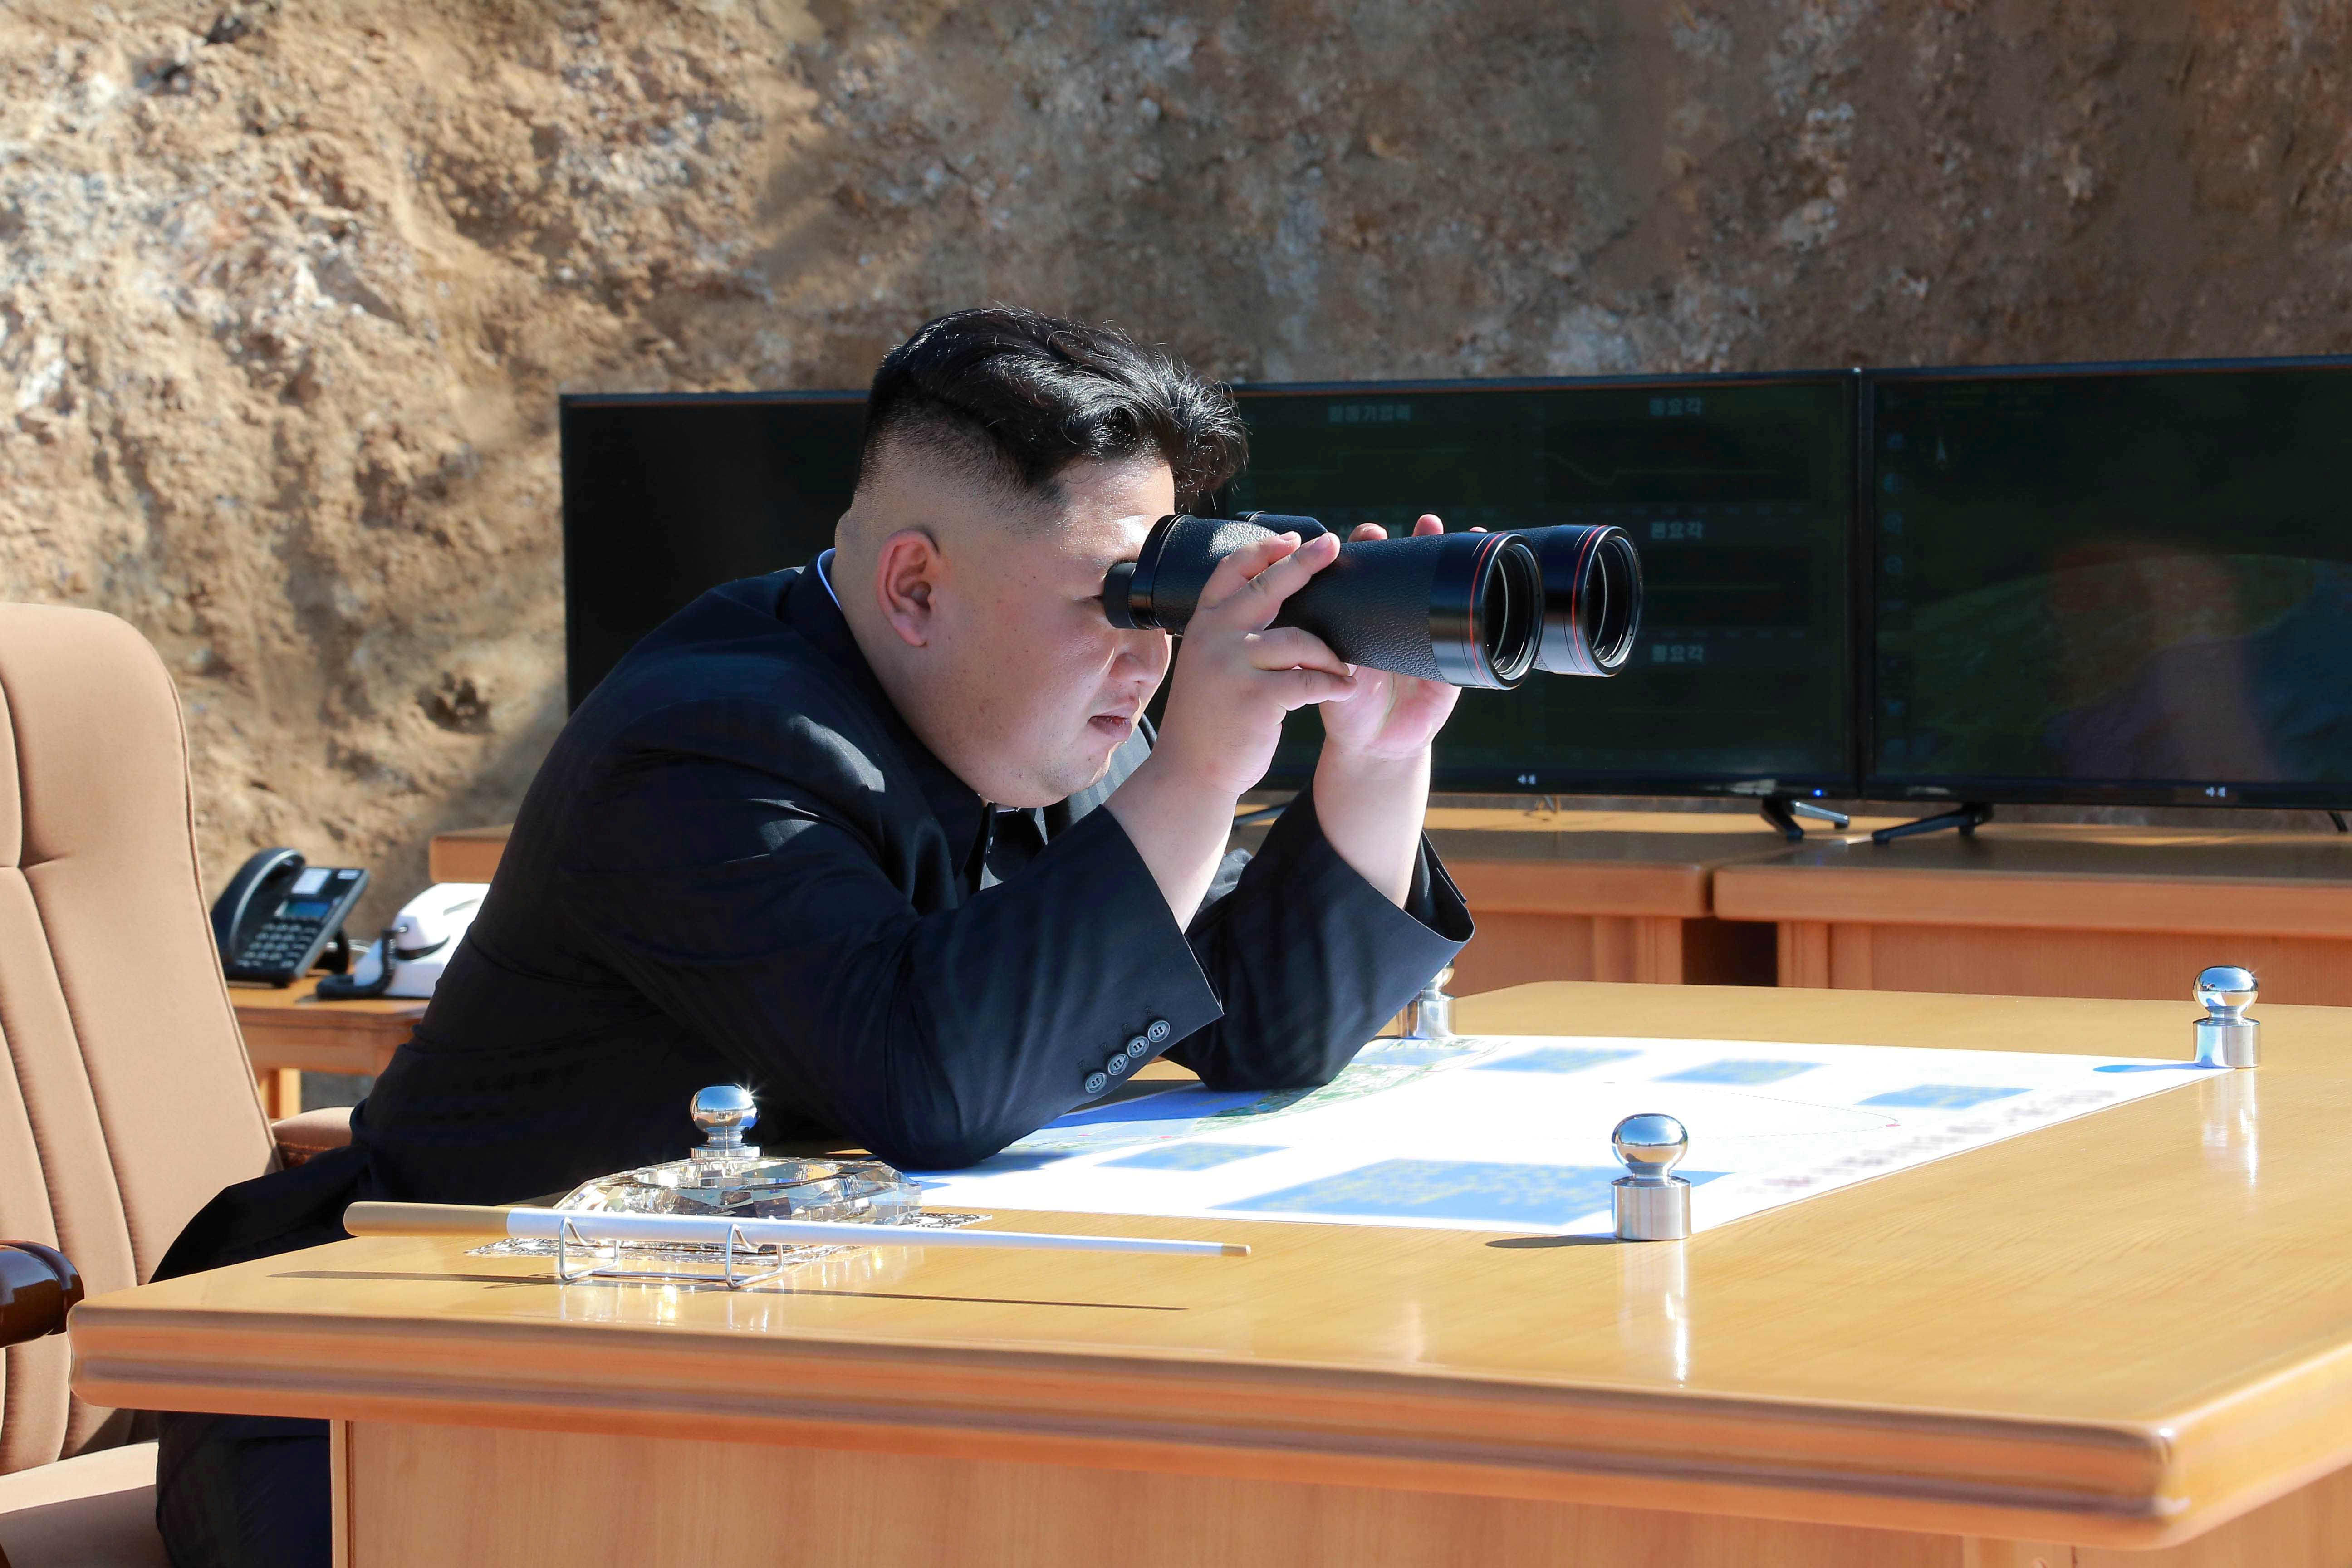 North Korea says it has test-fired a new tactical guided weapon